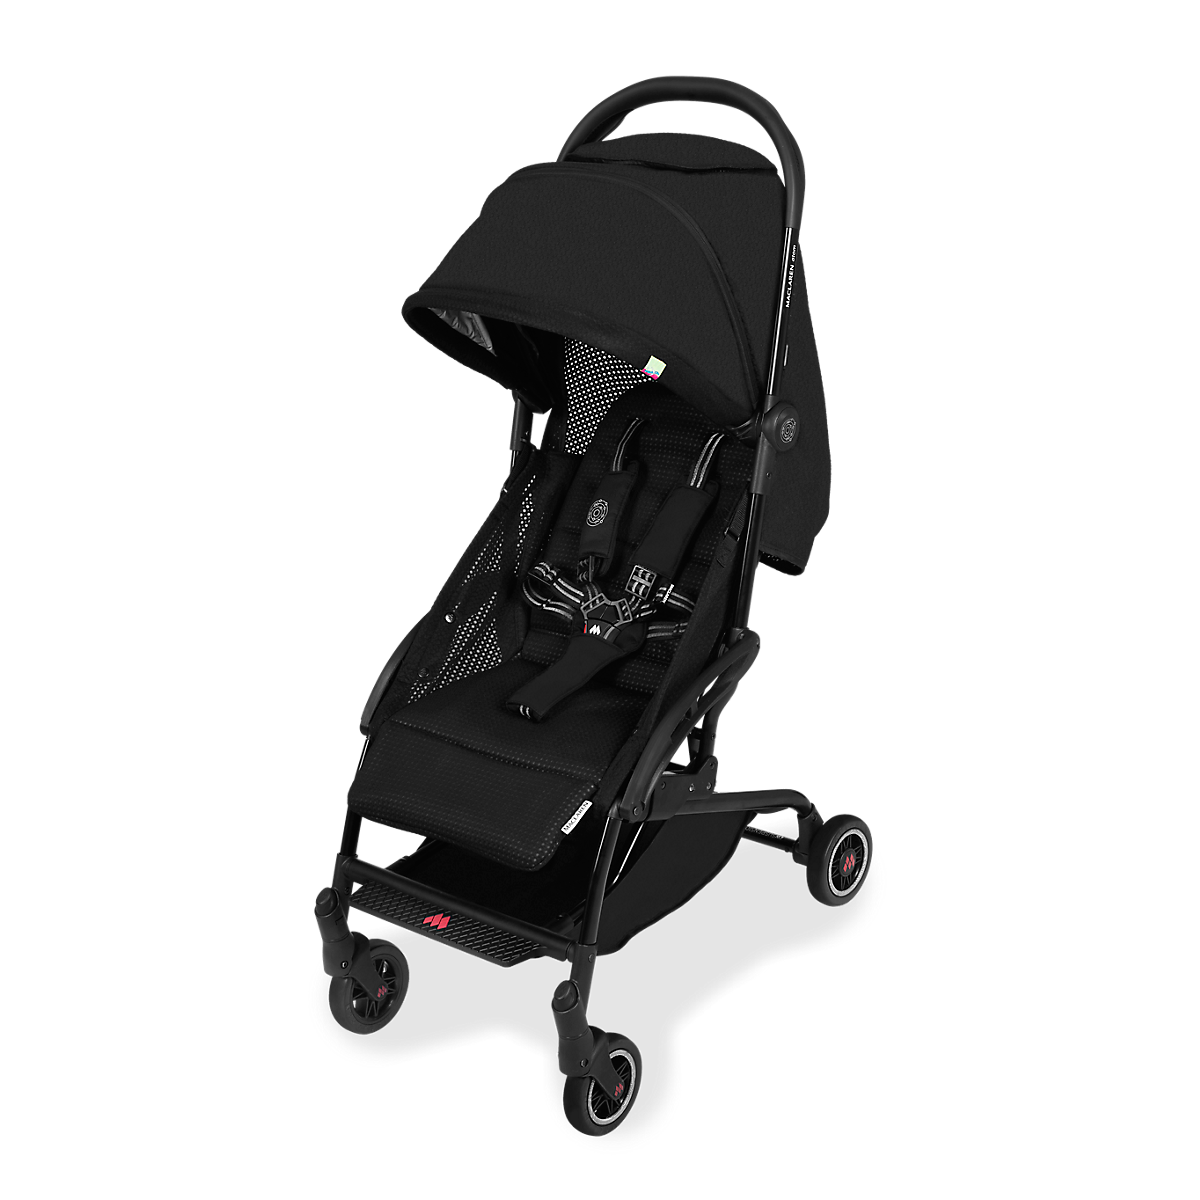 Yoyo Baby Stroller Usa Maclaren Introduces The Atom Style Set Stroller The Baby